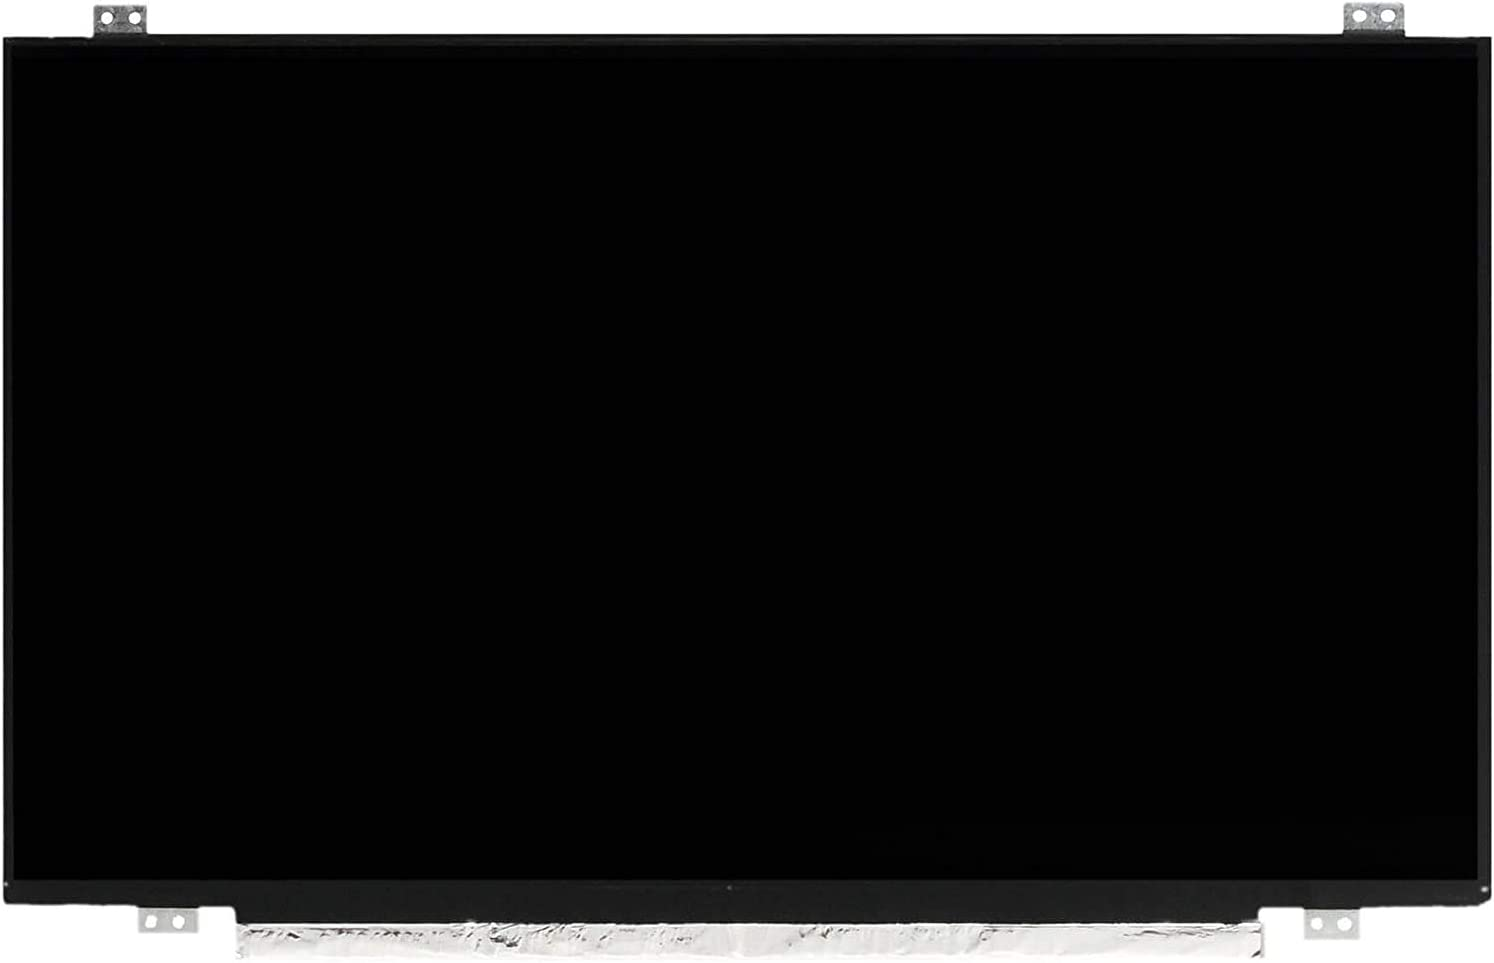 LED LCD Screen Replacement for Dell Latitude E5440 HD 1366x768 Display Non Touch